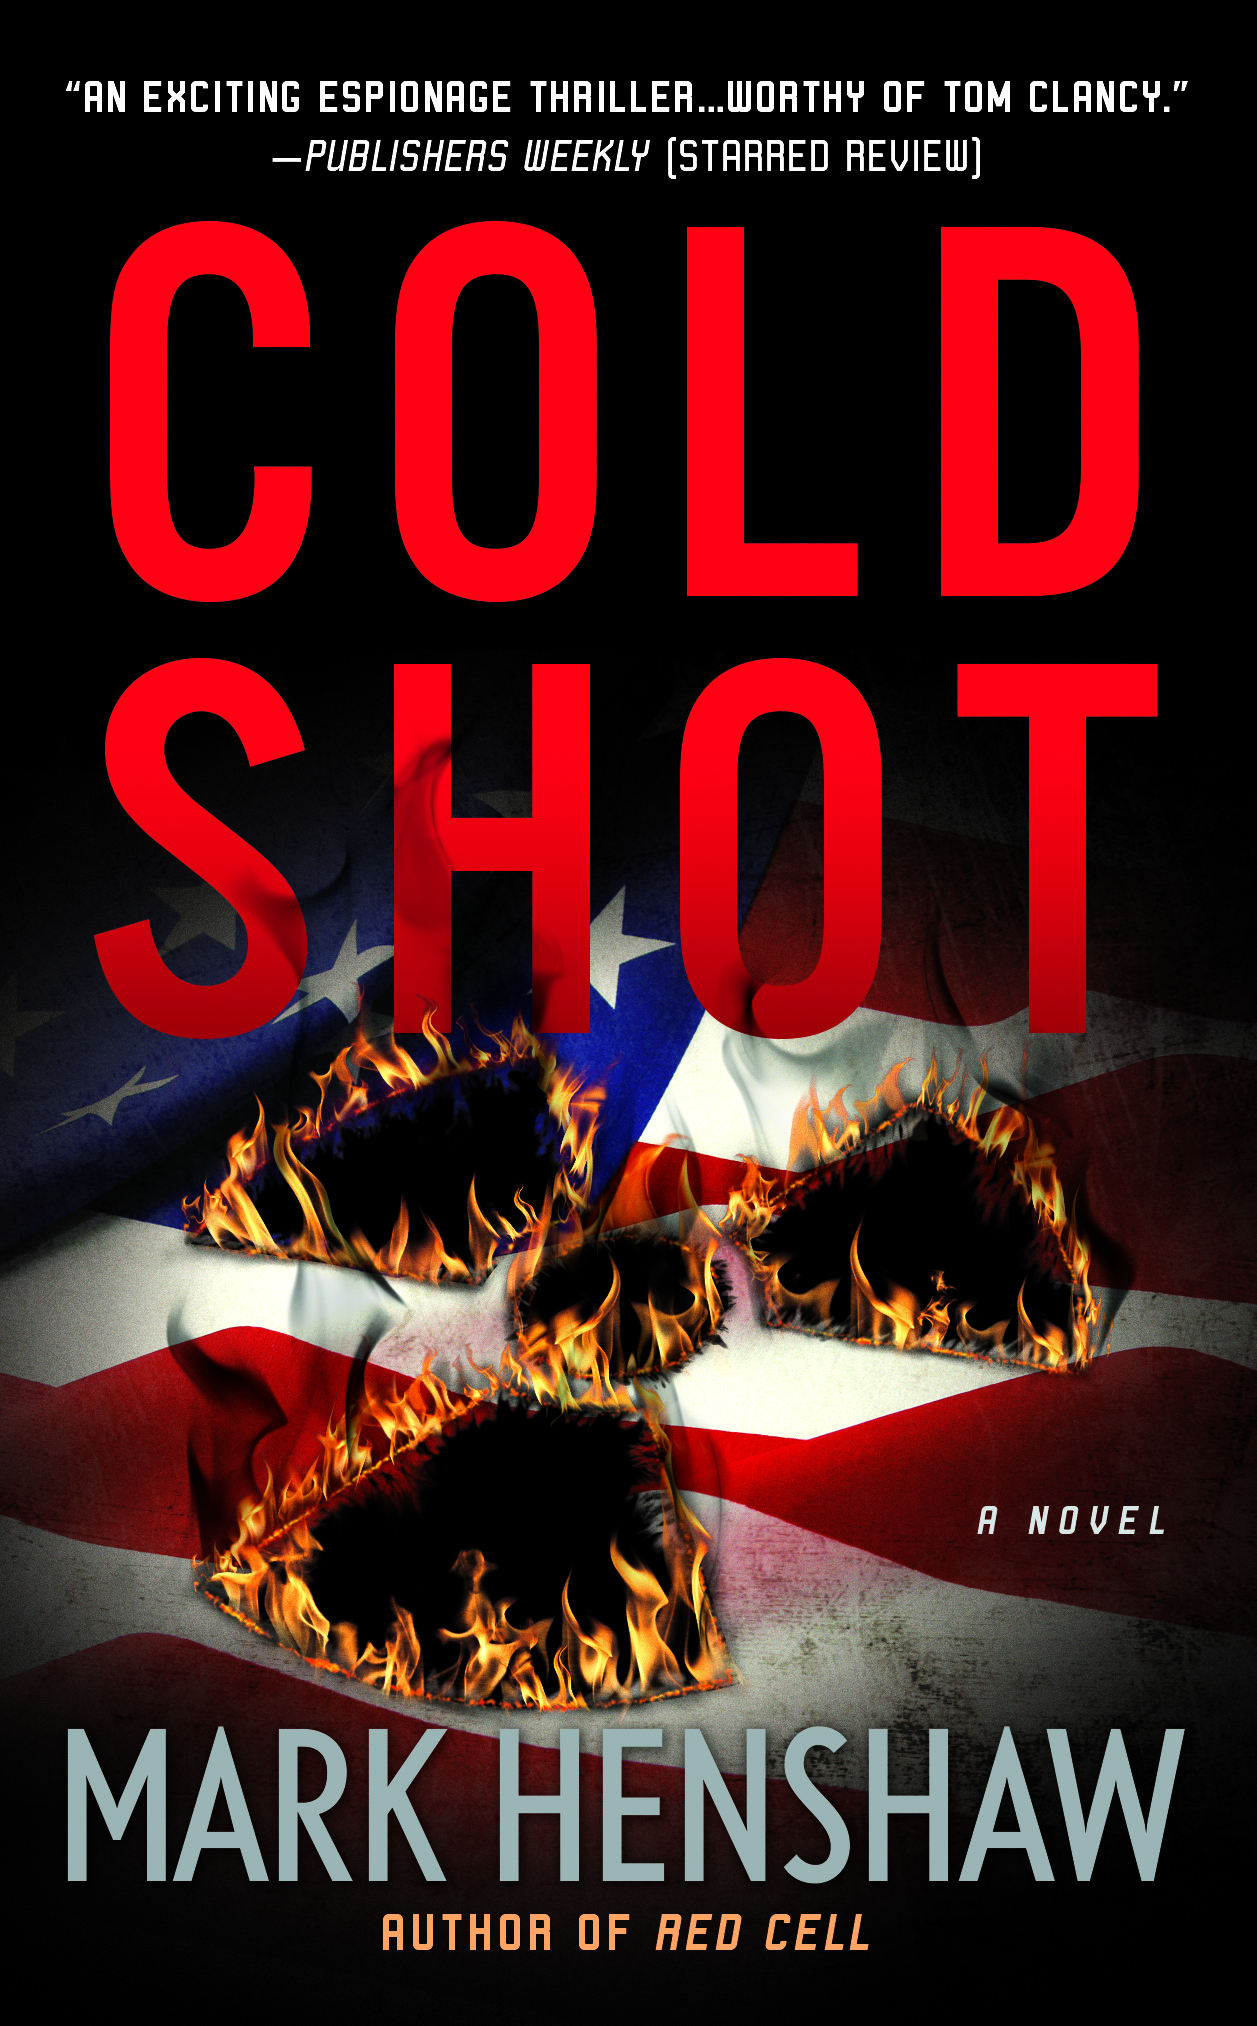 Click  here  to buy  Cold Shot  at Amazon.com  Click  here  to read an excerpt from  Cold Shot.